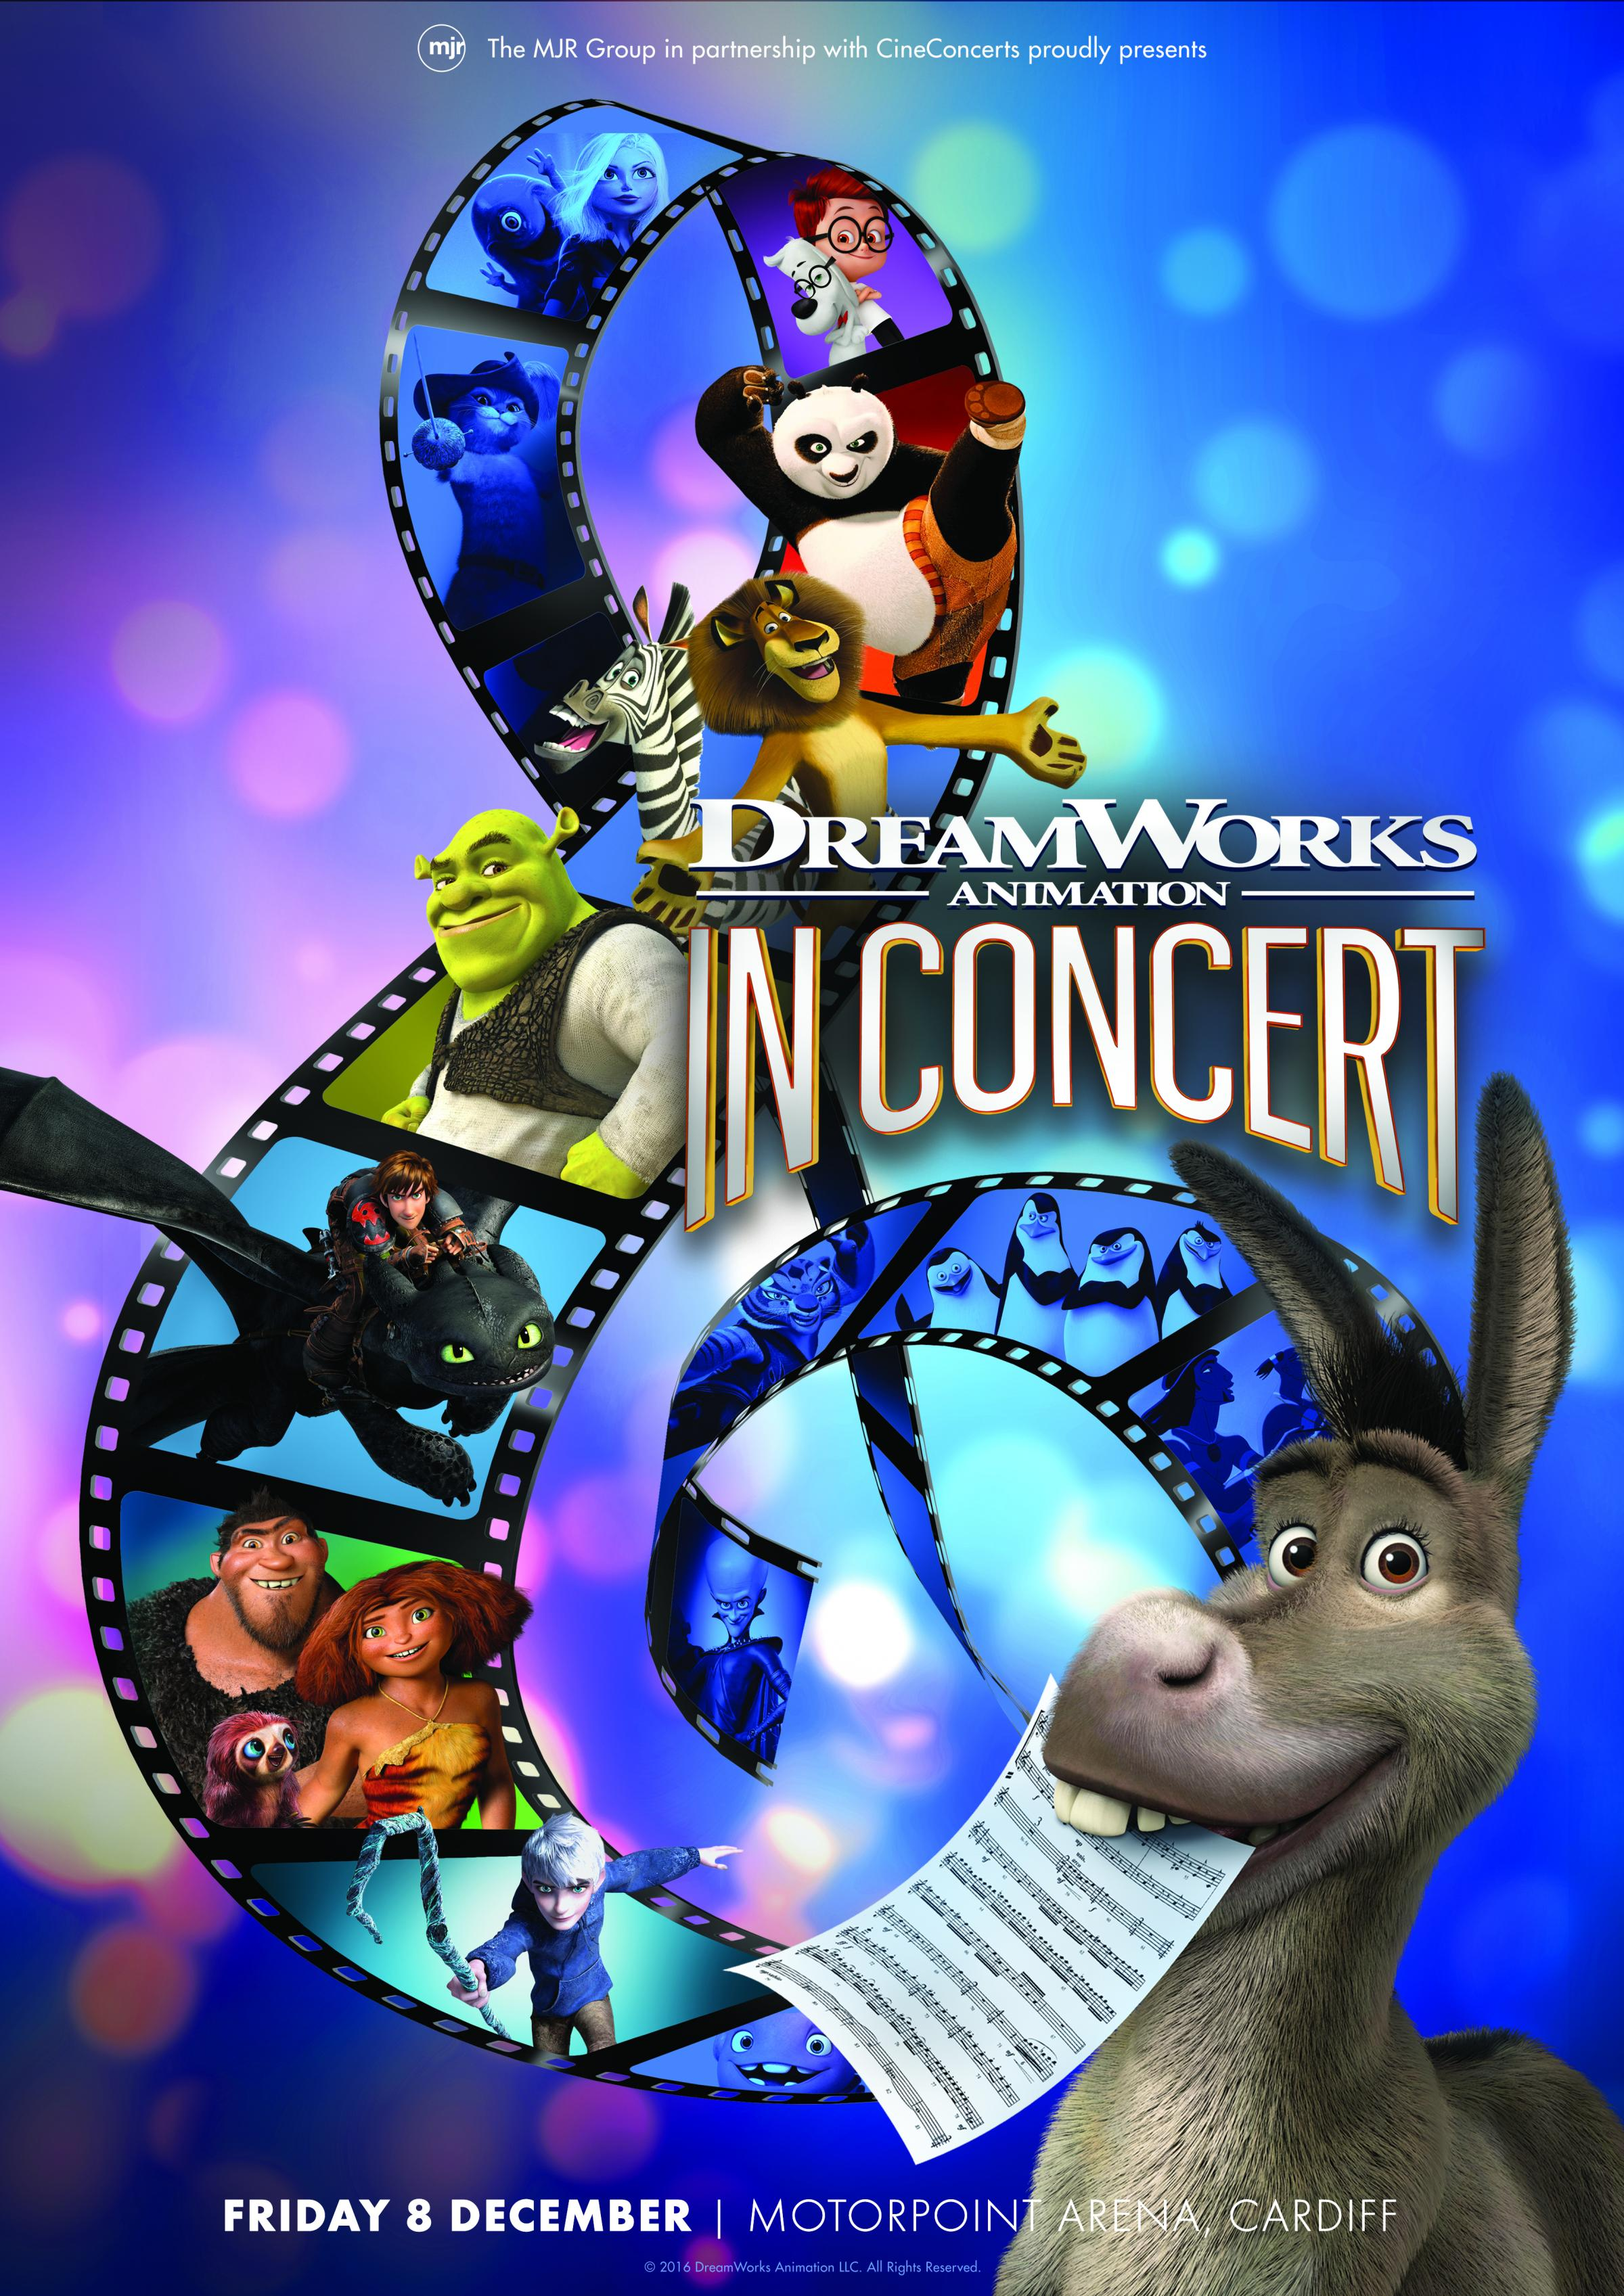 DreamWorks Animation in Concert is heading to Cardiff